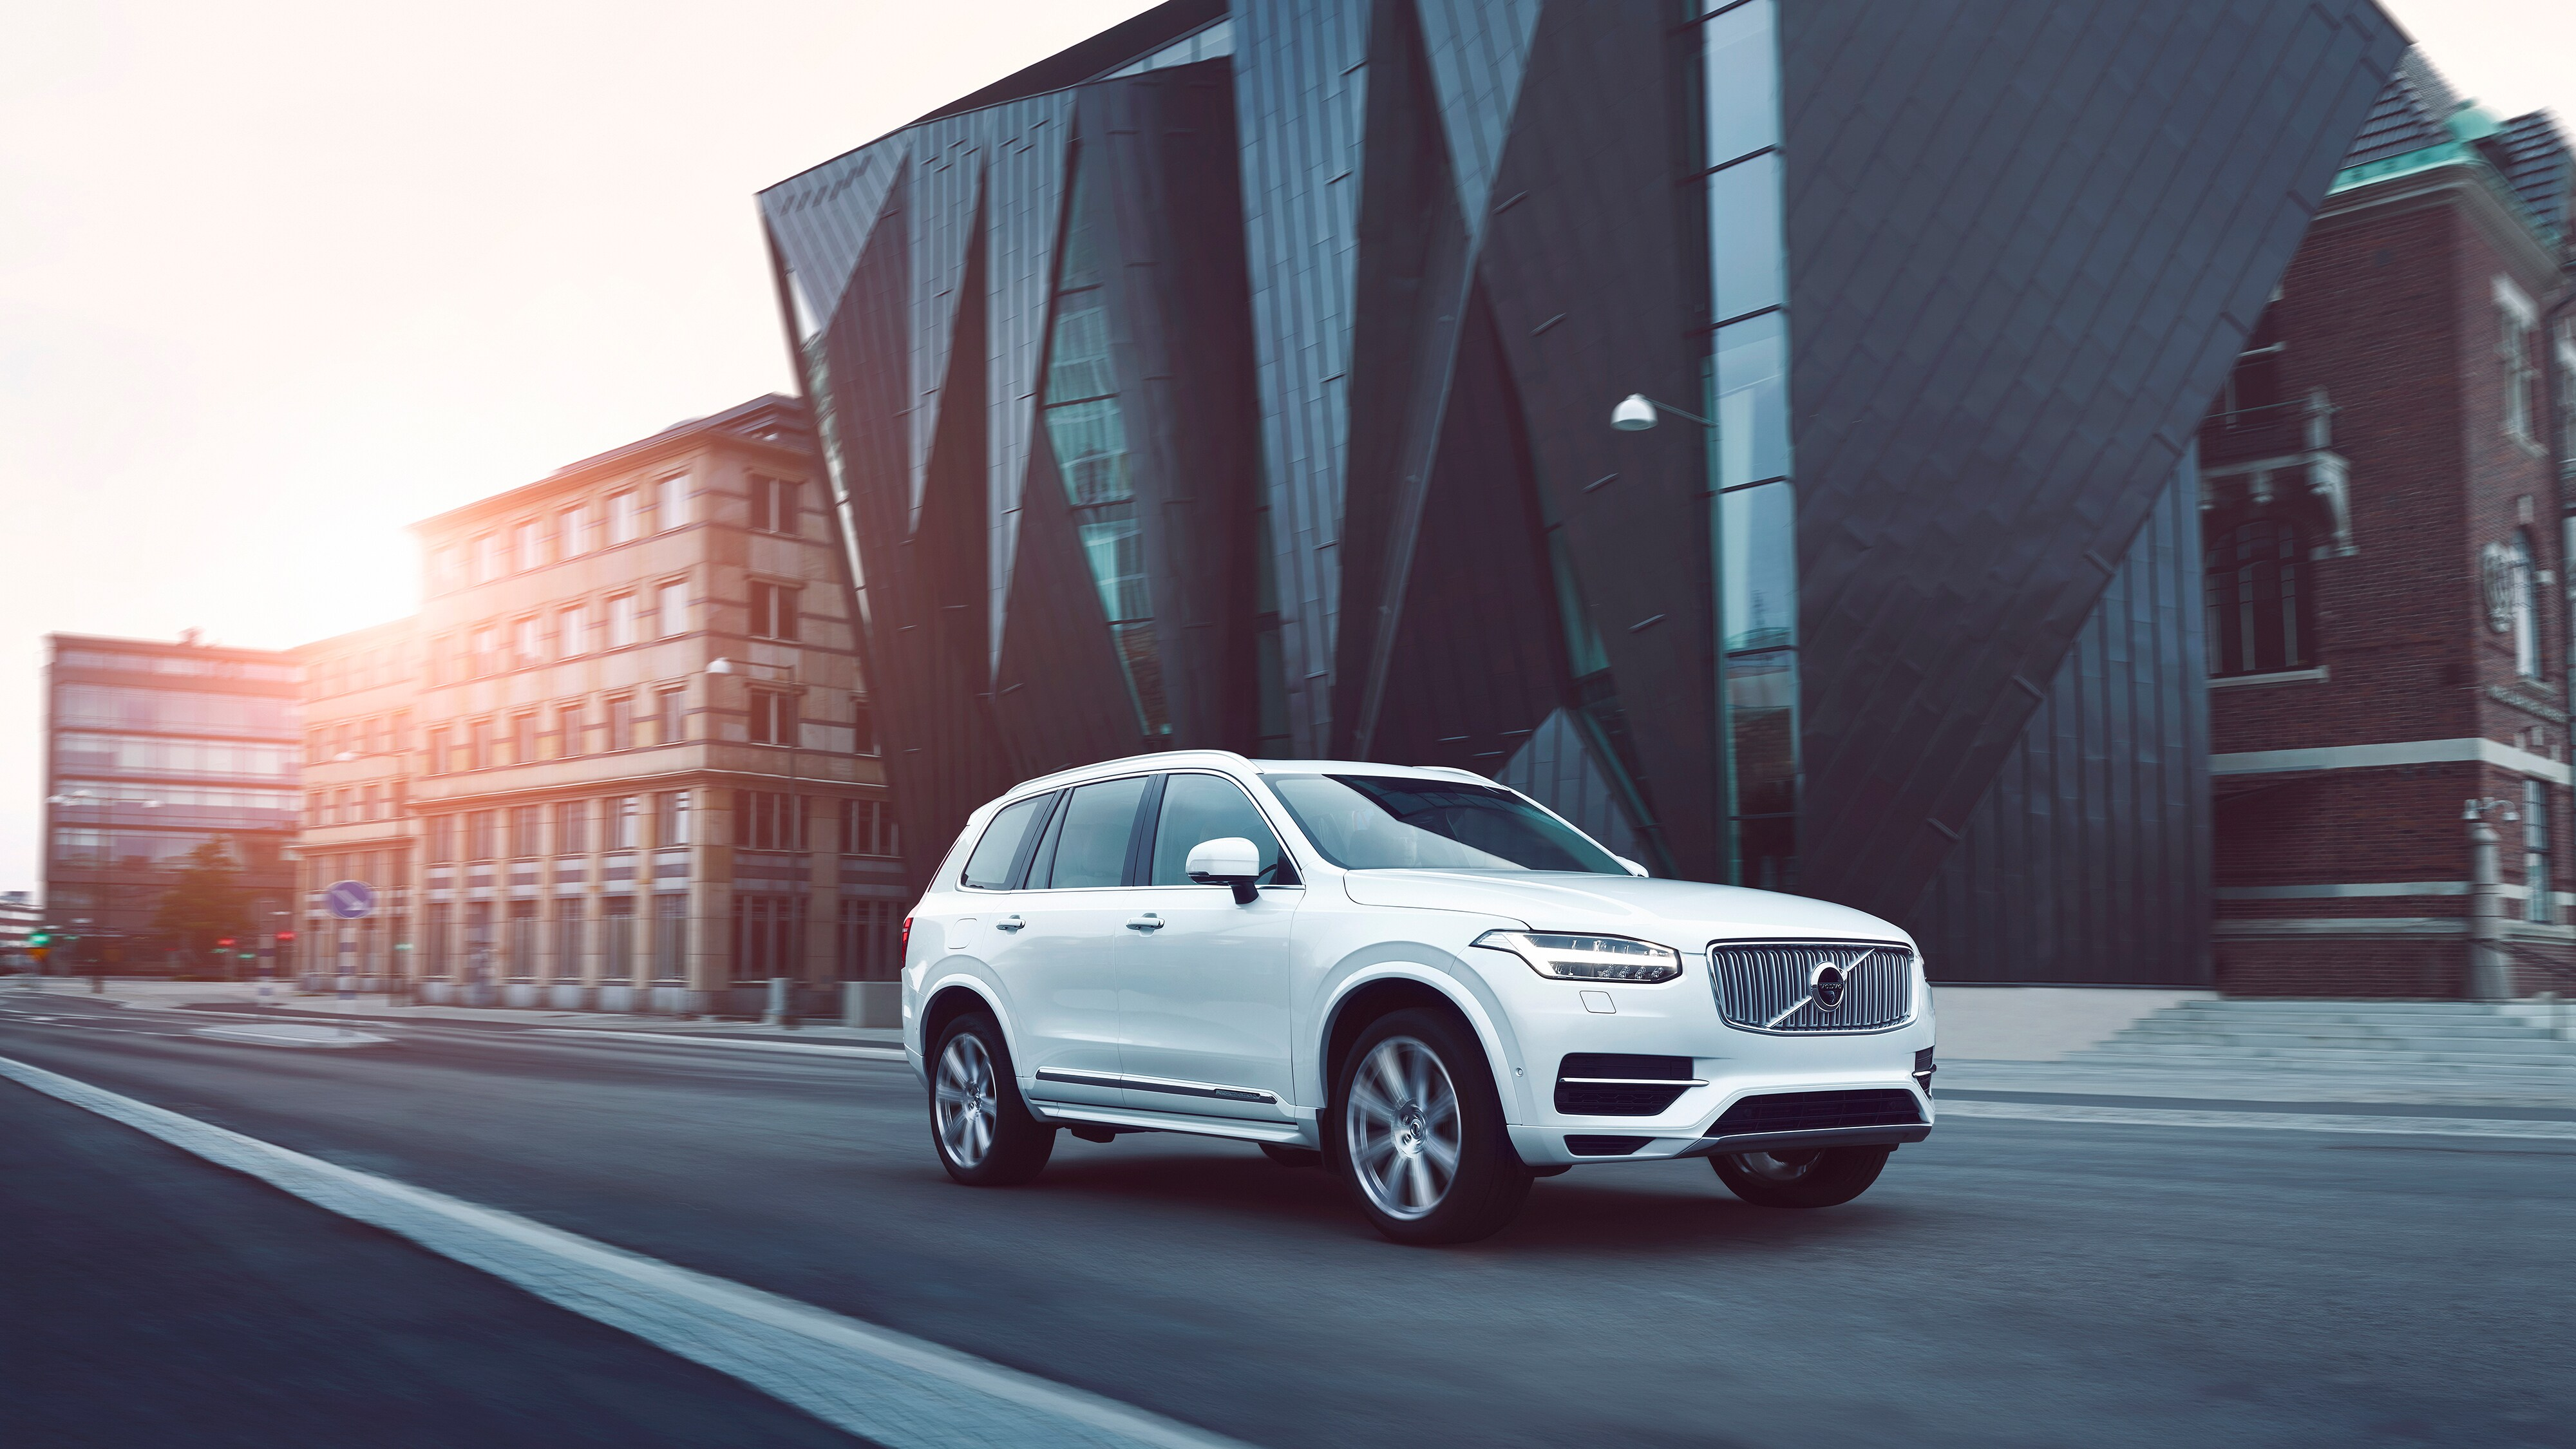 The Volvo XC90 drives past a modern building